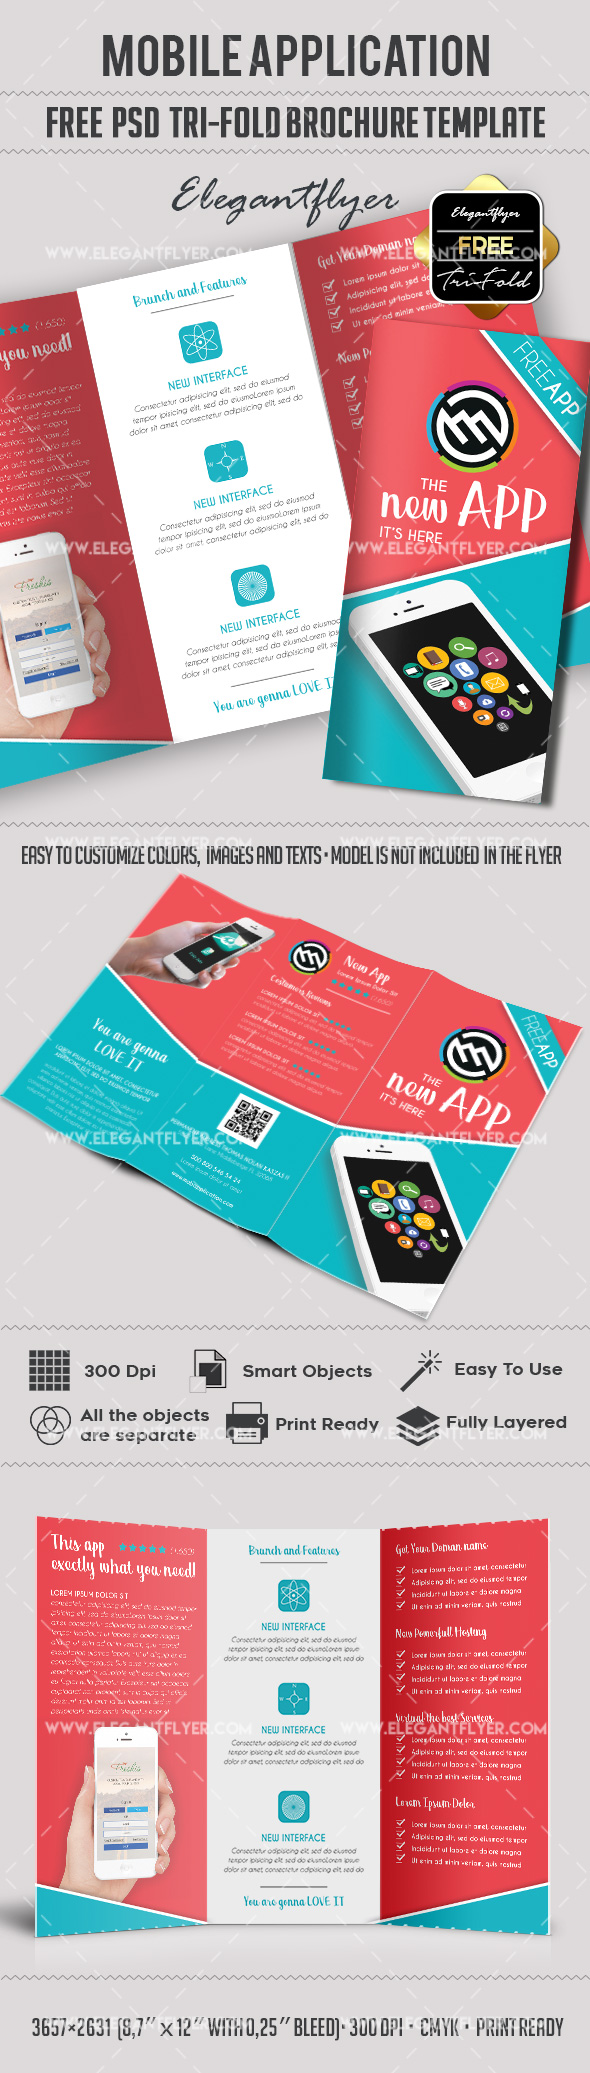 Free mobile application tri fold psd brochure by for Free psd brochure template